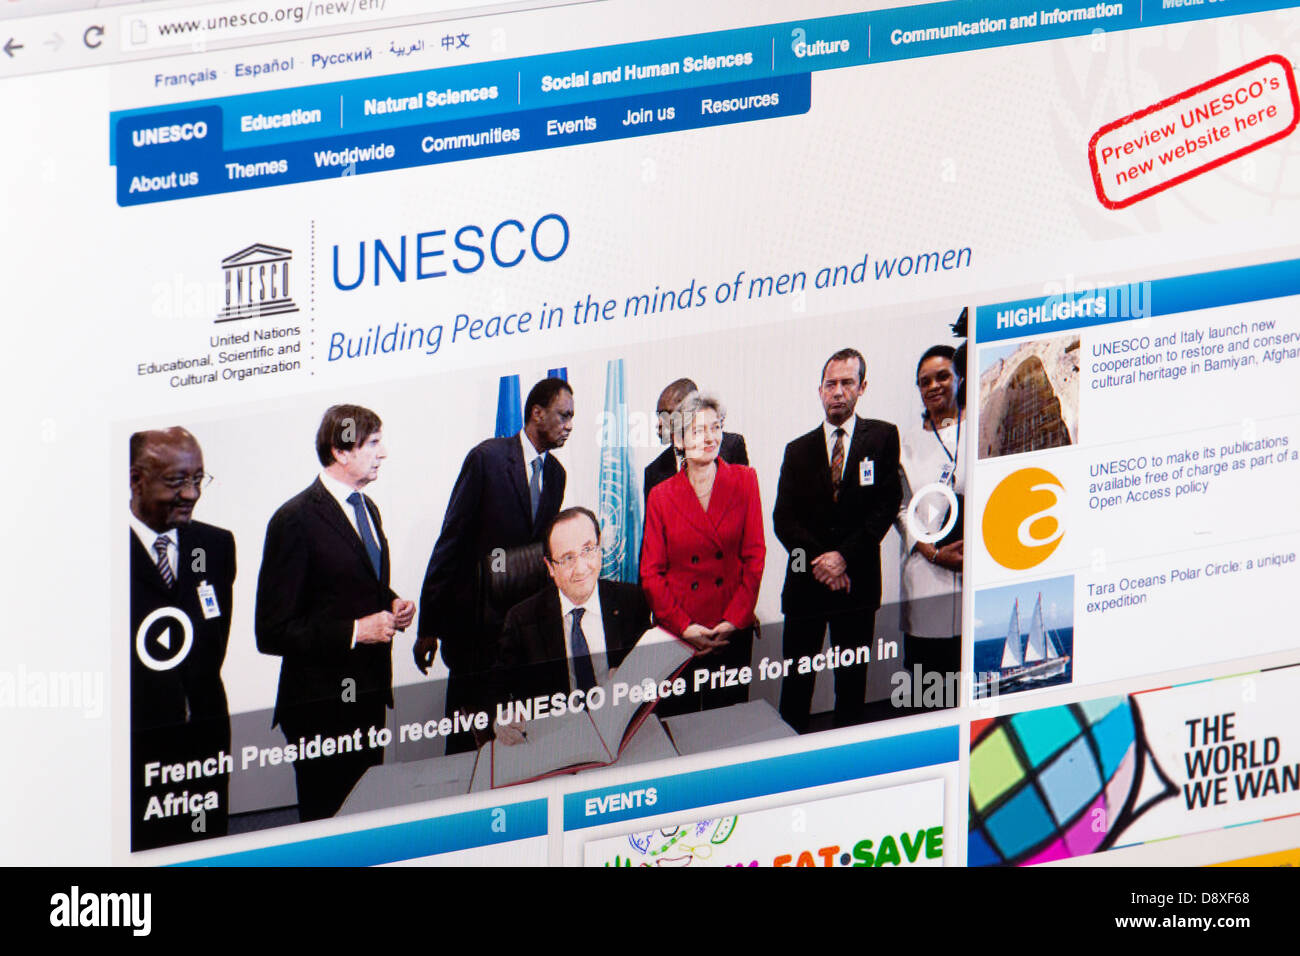 UNESCO homepage Website or web page on a laptop screen or computer monitor - Stock Image